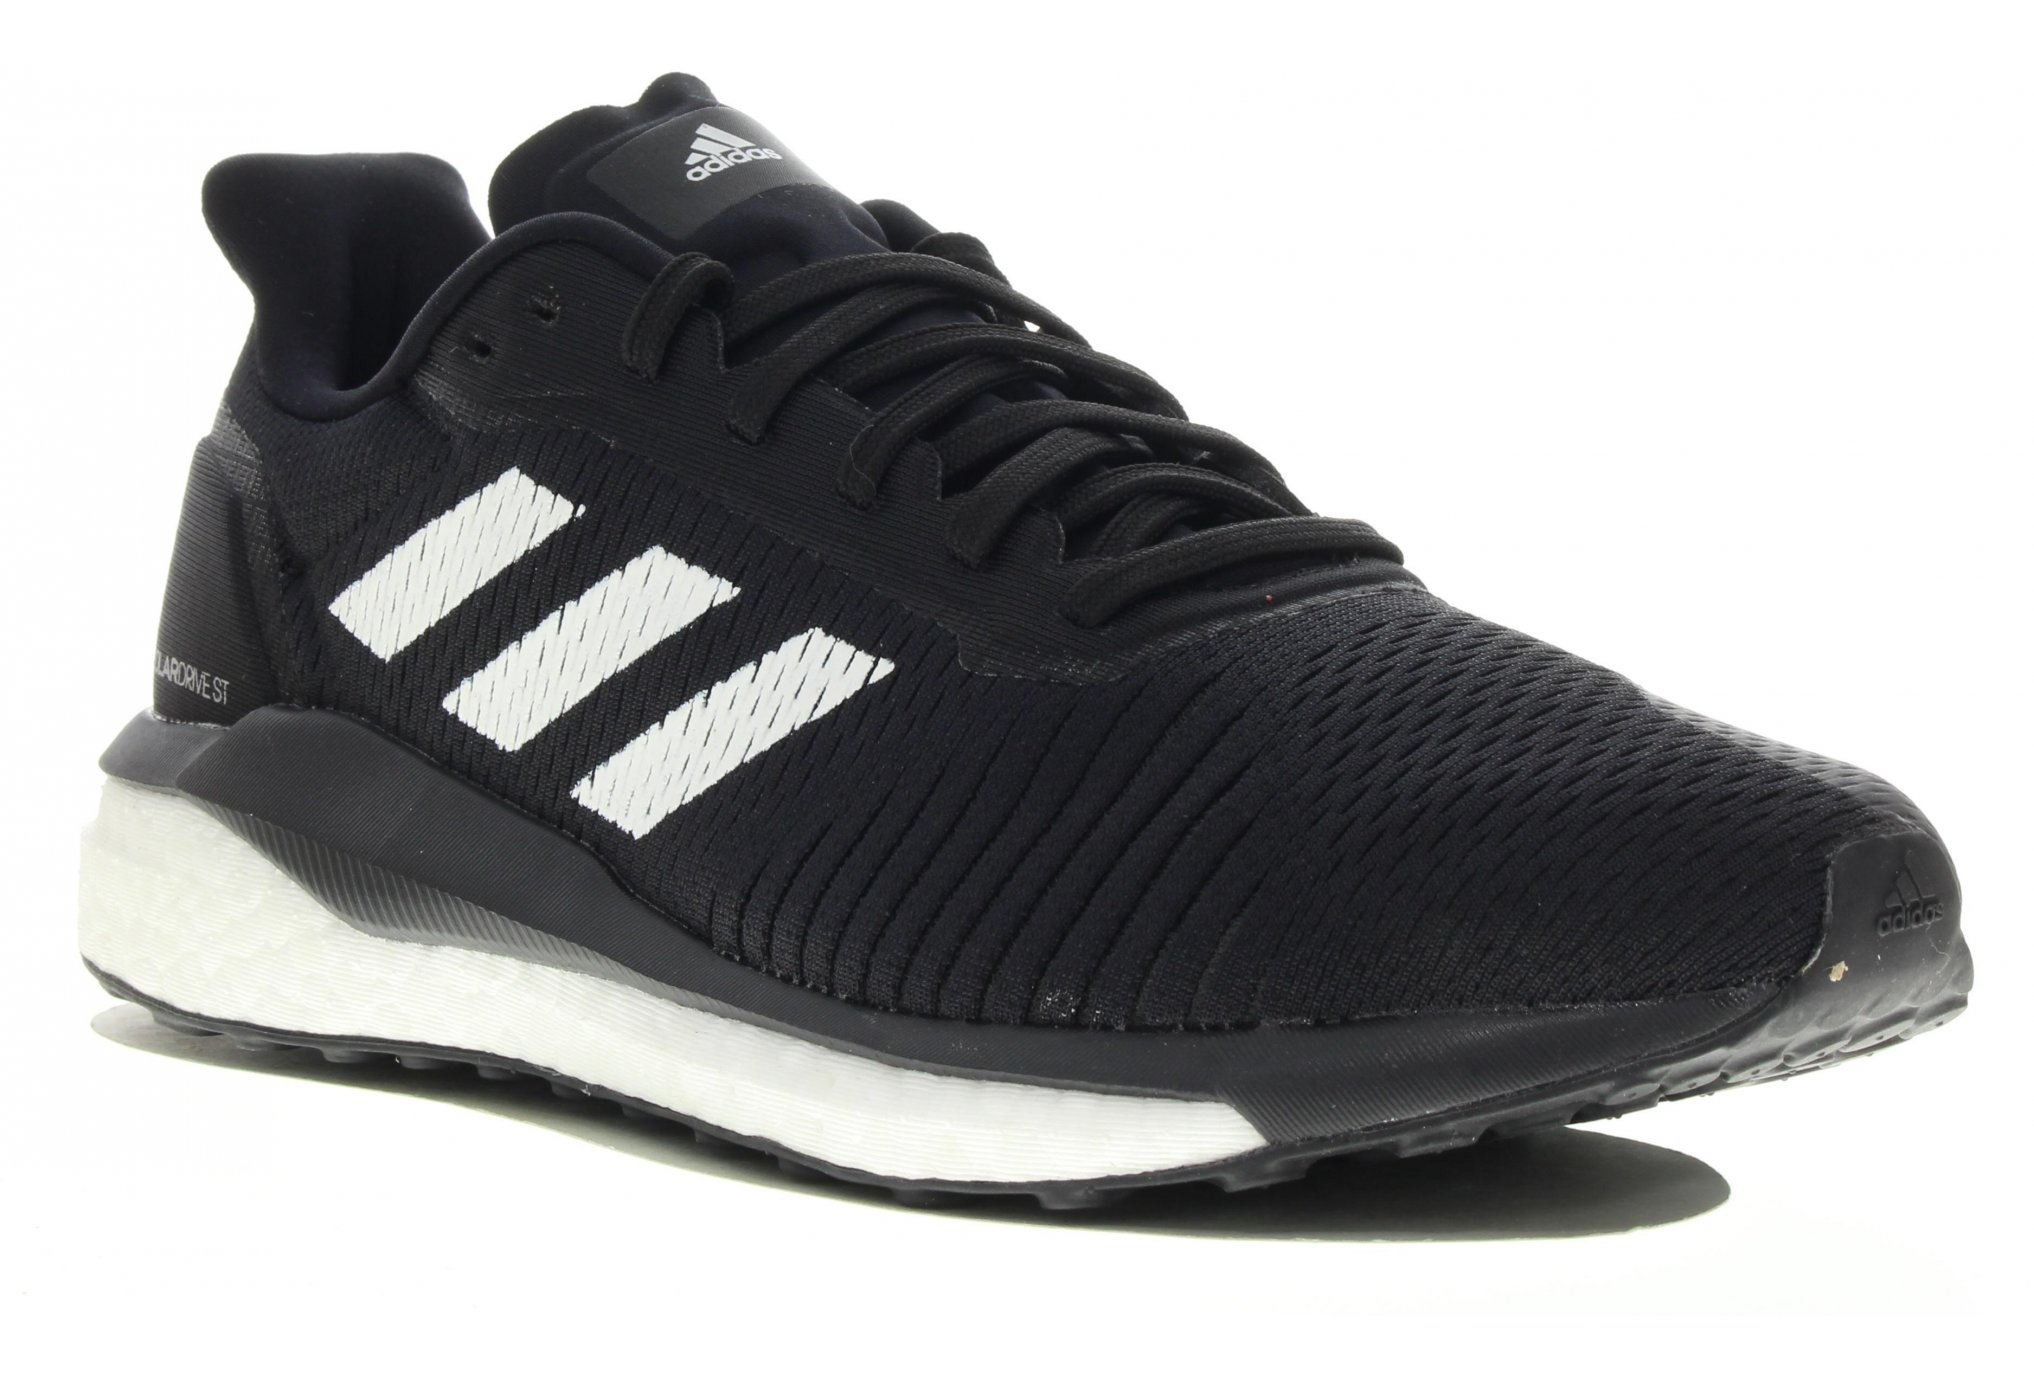 adidas Solar Drive ST Chaussures homme